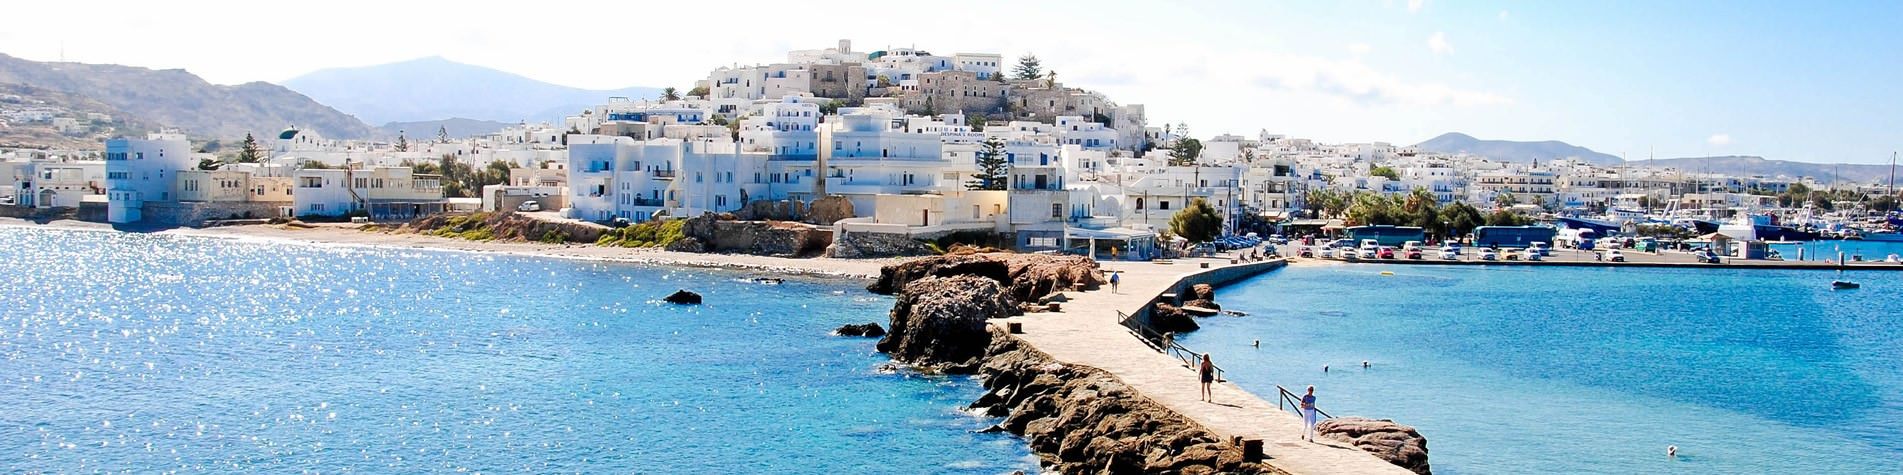 Naxos Island Holidays with Cyplon Holidays